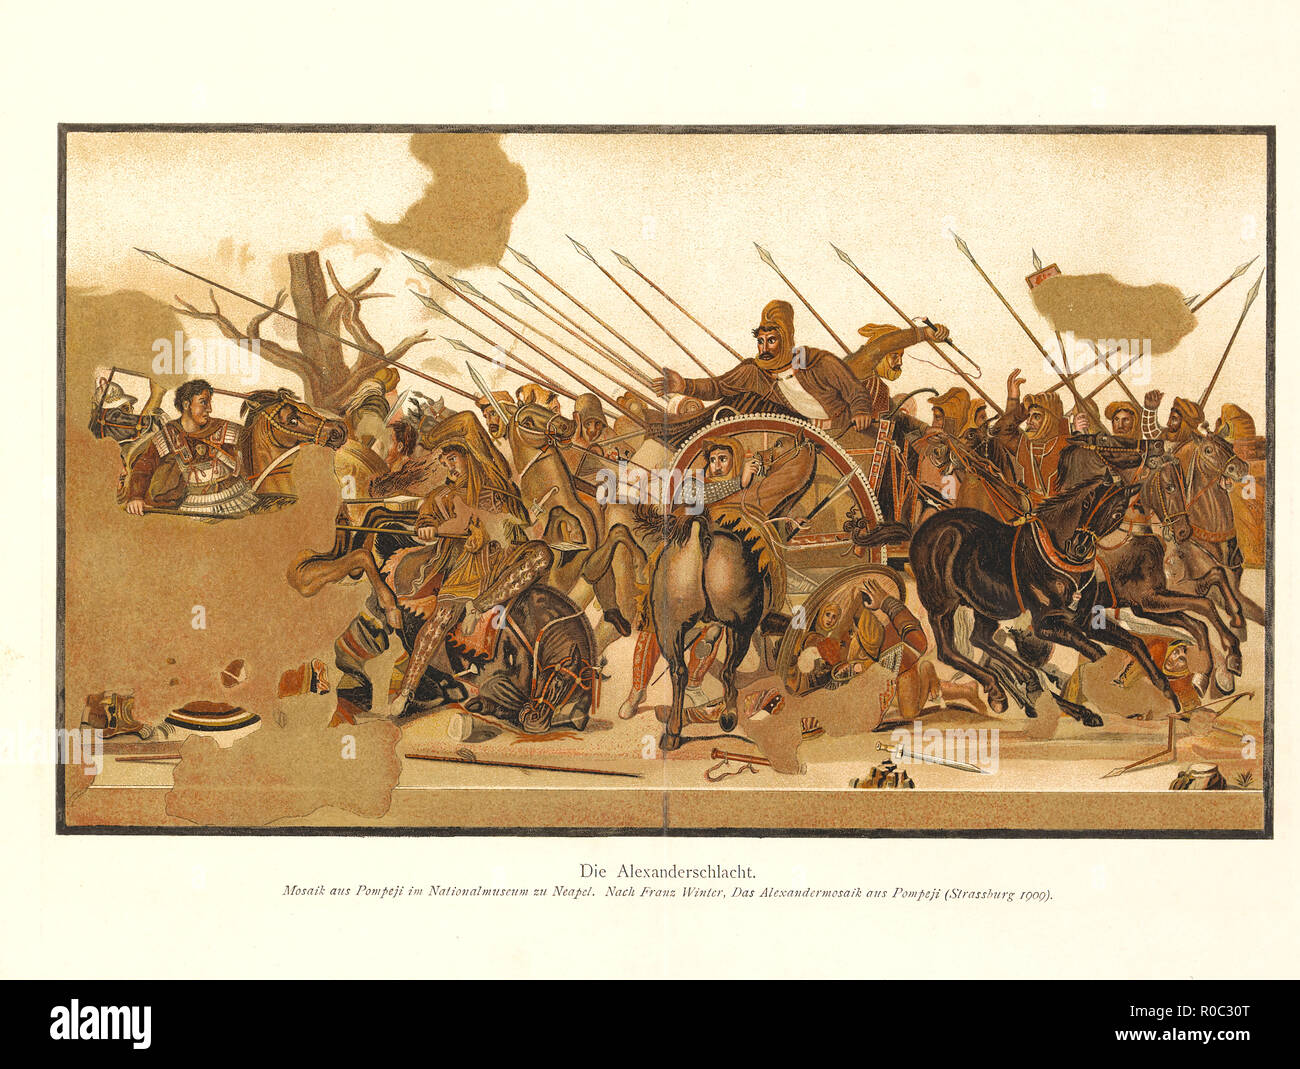 Alexander the Great versus Darius III of Persia during Battle of Issus, Tile Mosaic discovered from the ruins of Pompeii, National Museum of Naples, Strasbourg, 1909 - Stock Image